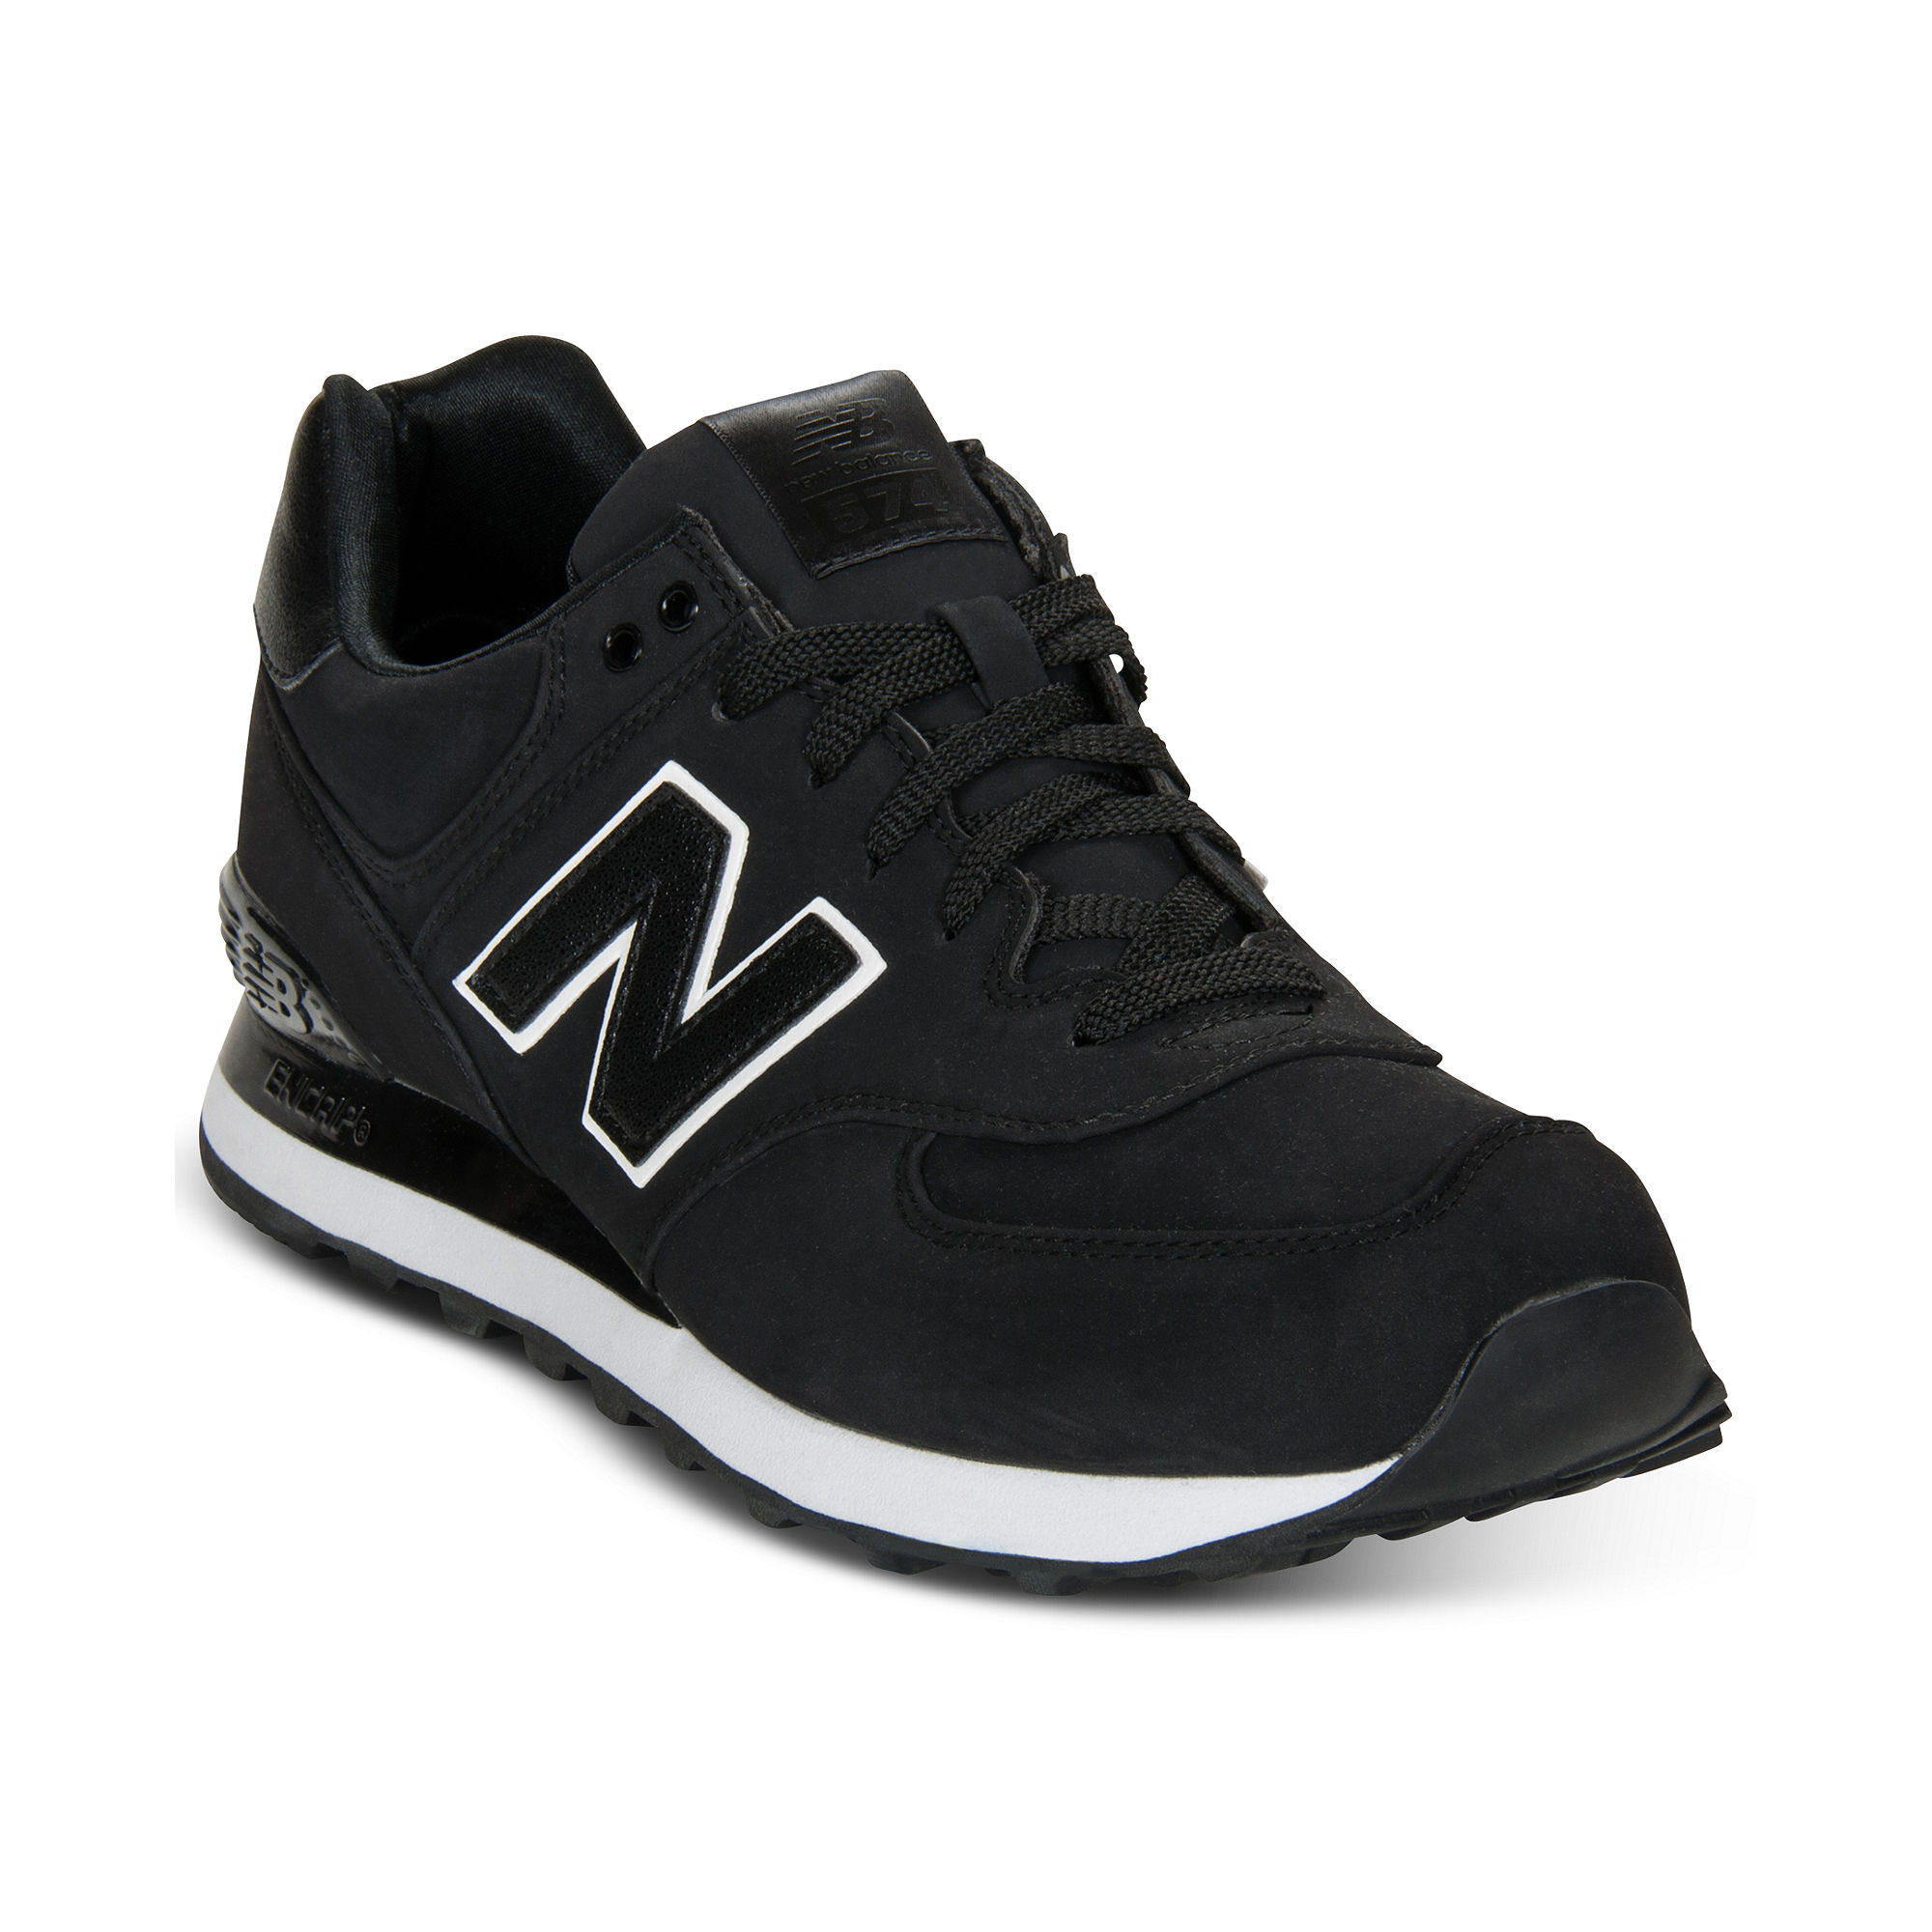 new balance 574 black and white